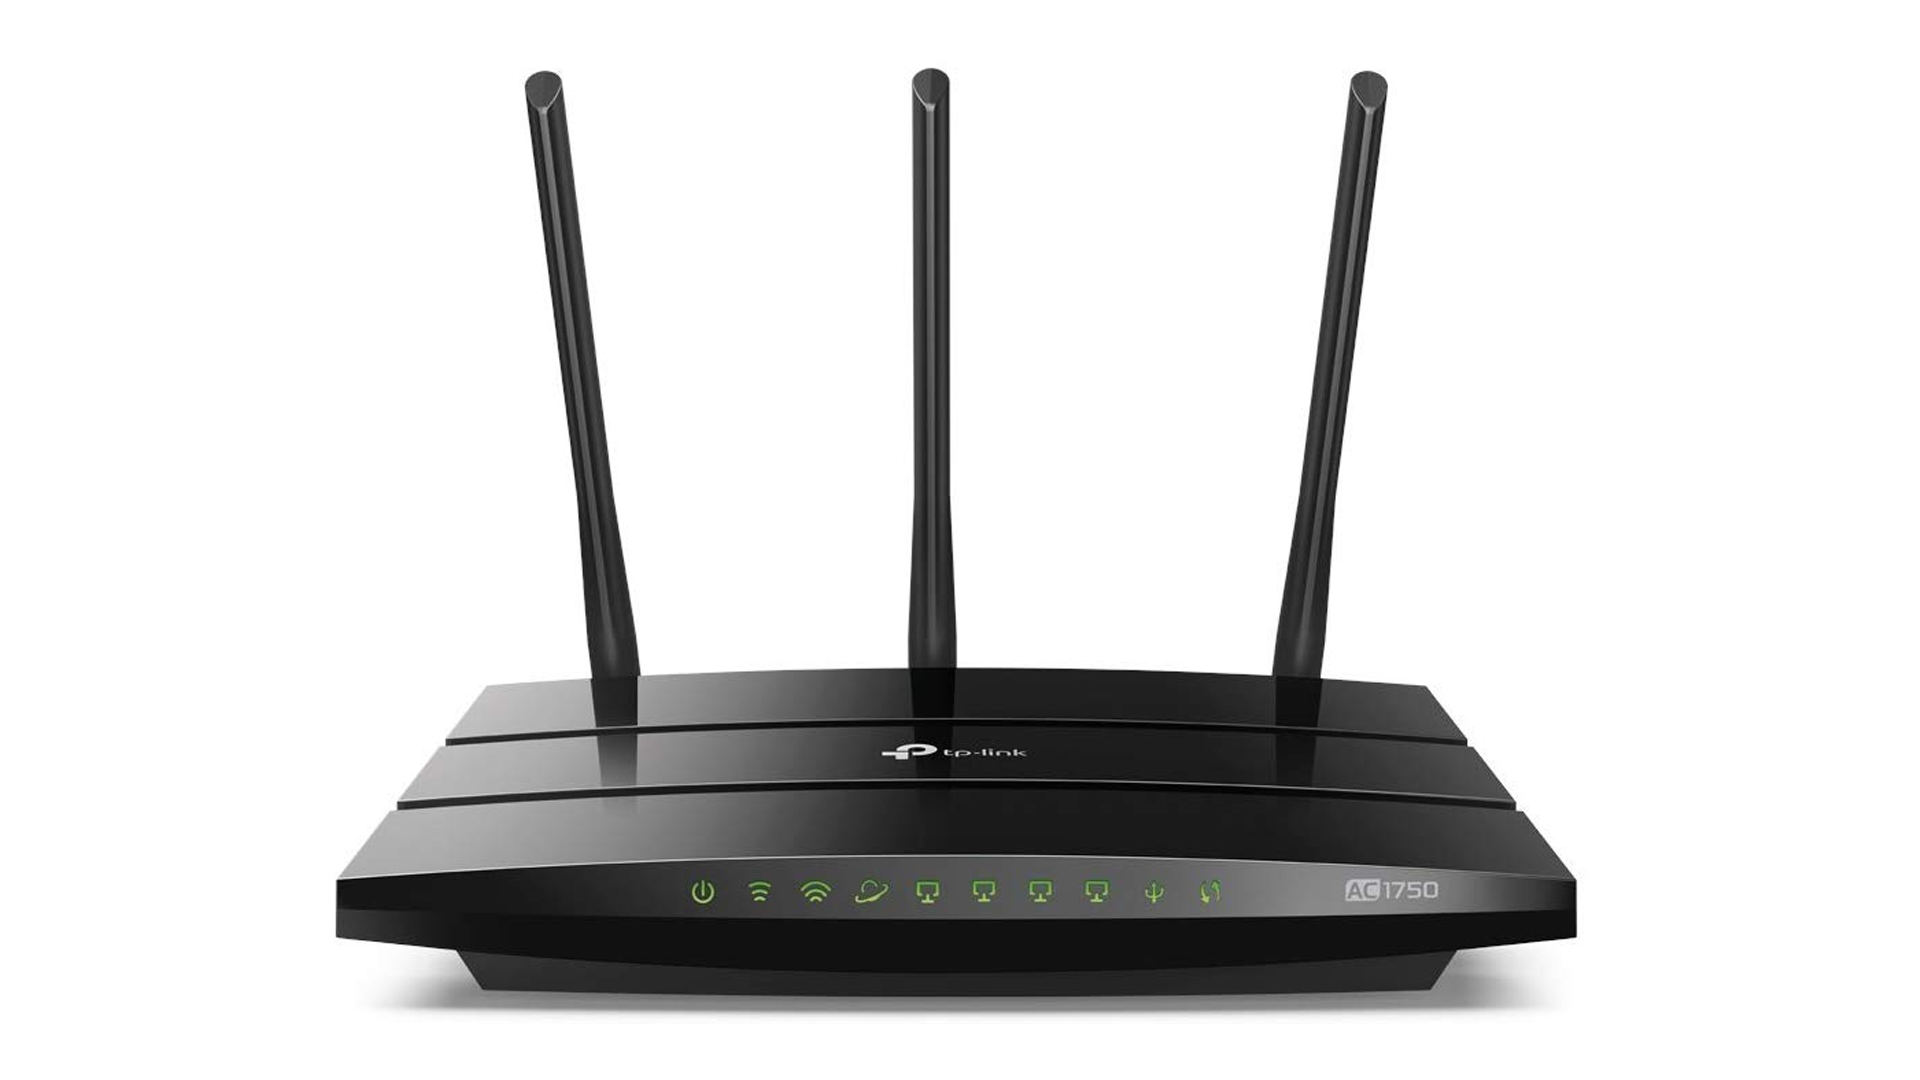 A photo of the TP-Link smart router.